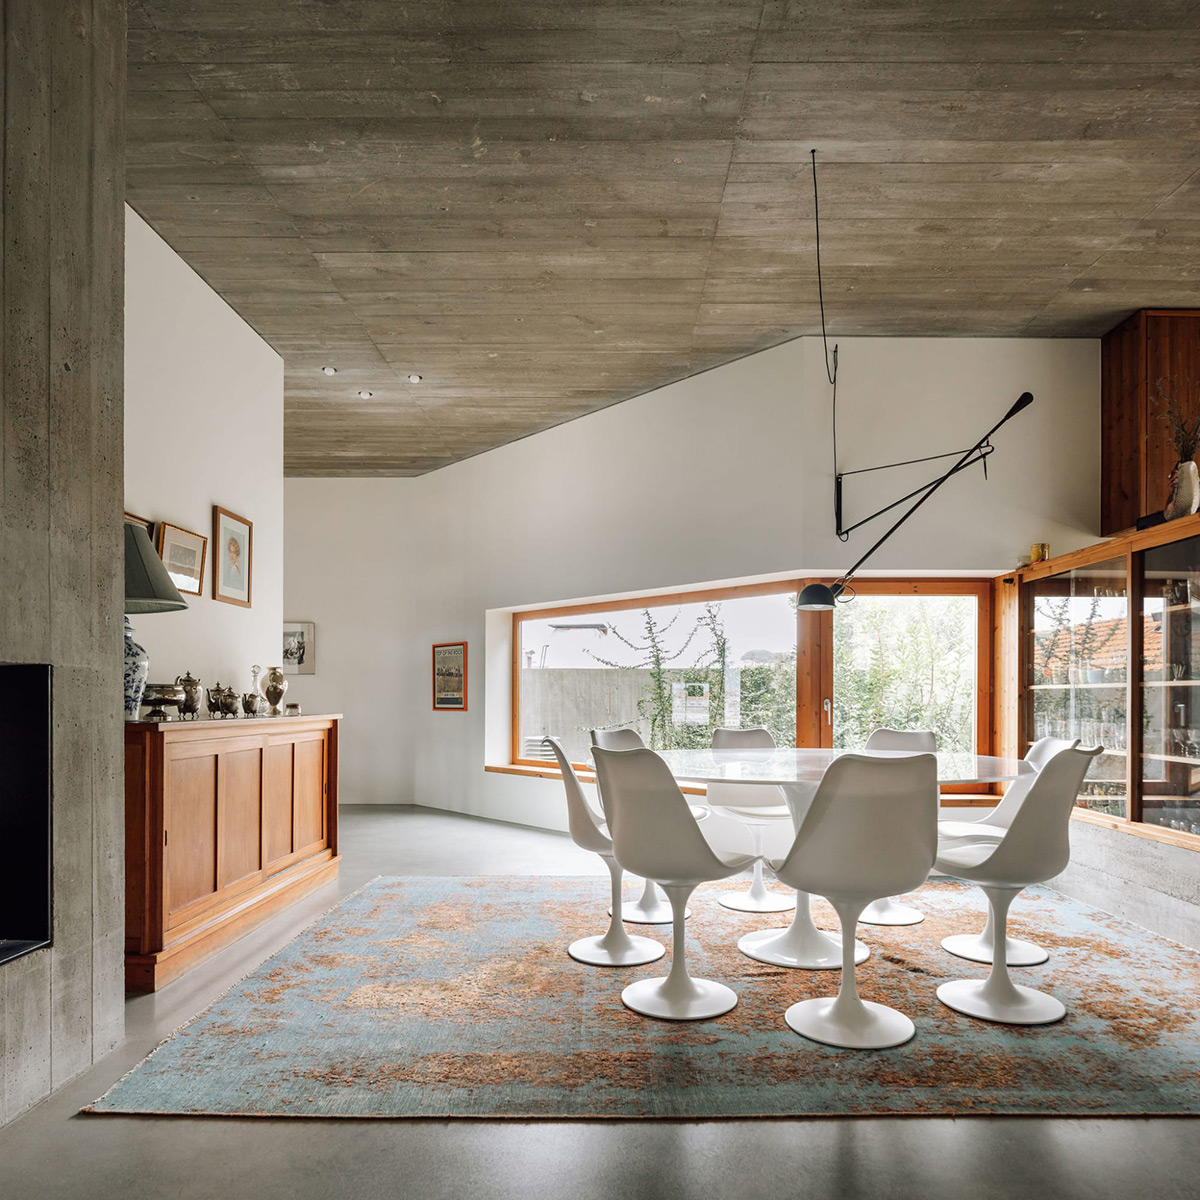 House-in-Costa-do-Castelo-Ricardo-Bak-Gordon-Francisco-Nogueira-02